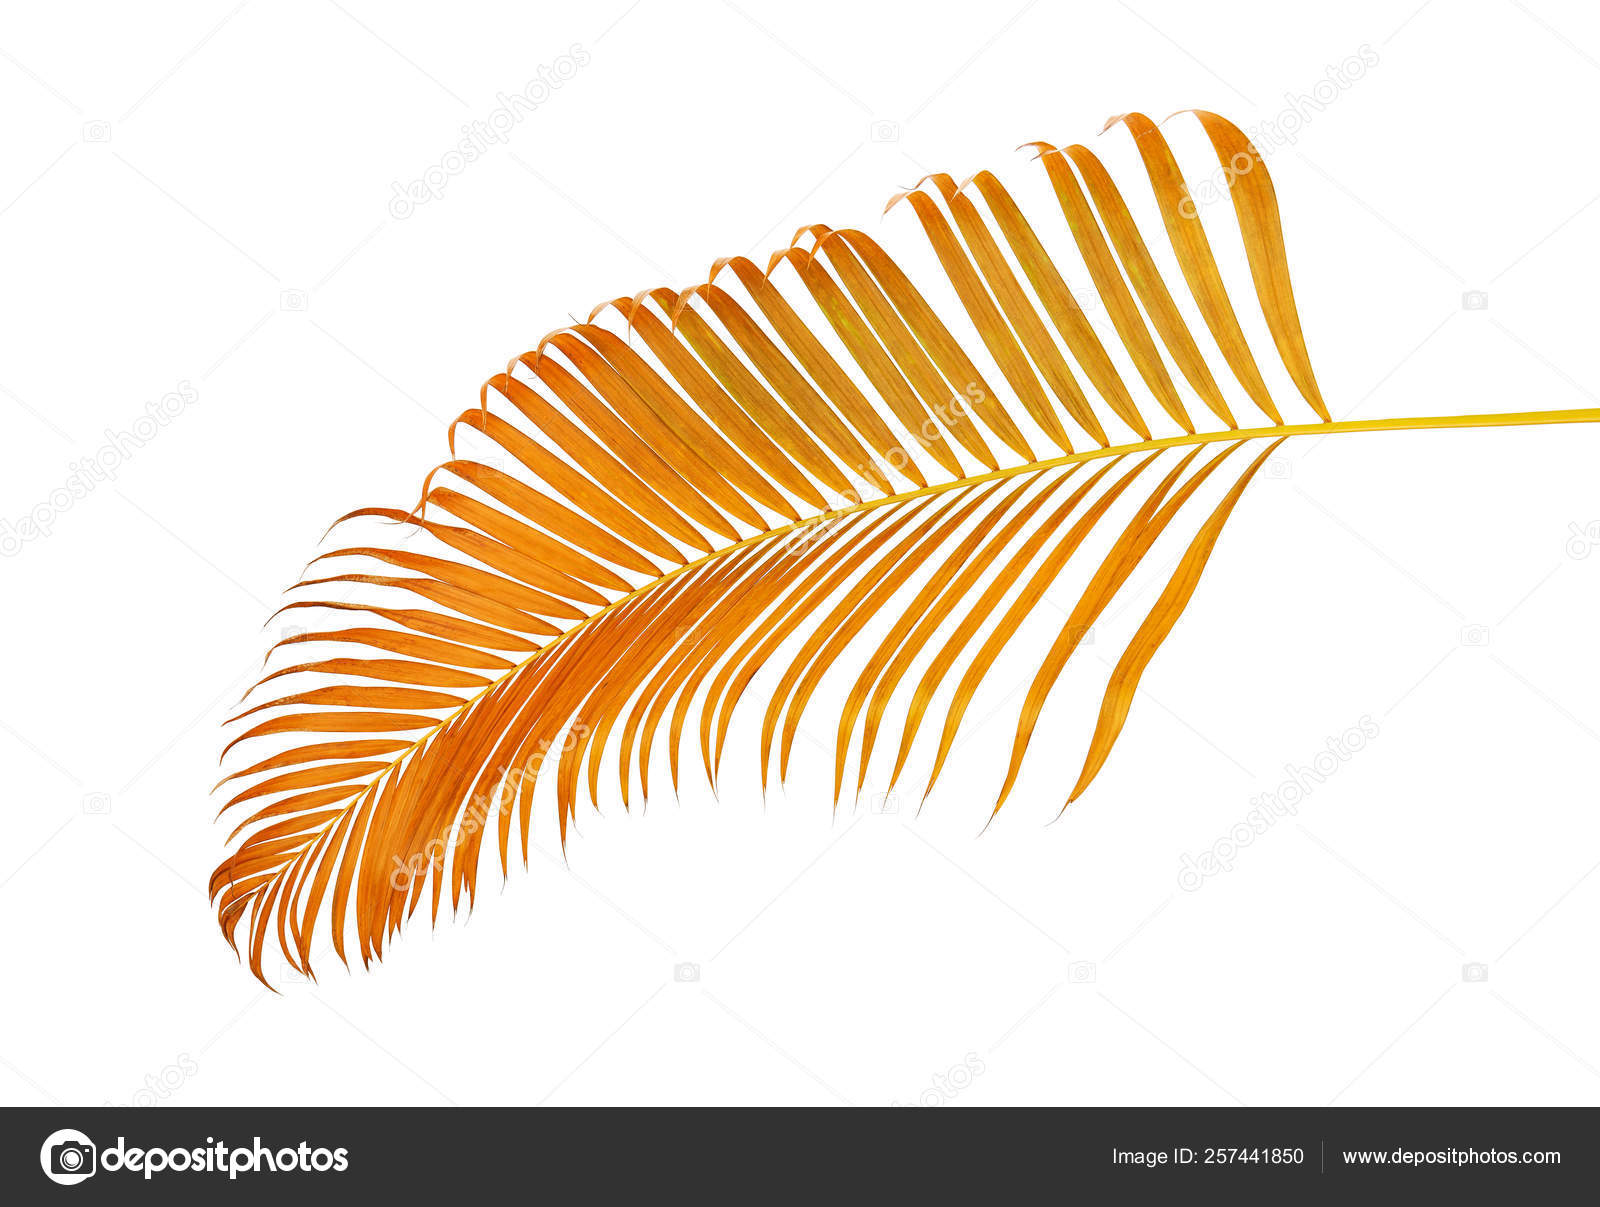 Yellow Palm Leaves Dypsis Lutescens Golden Cane Palm Areca Palm Stock Photo Image By Dewins 257441850